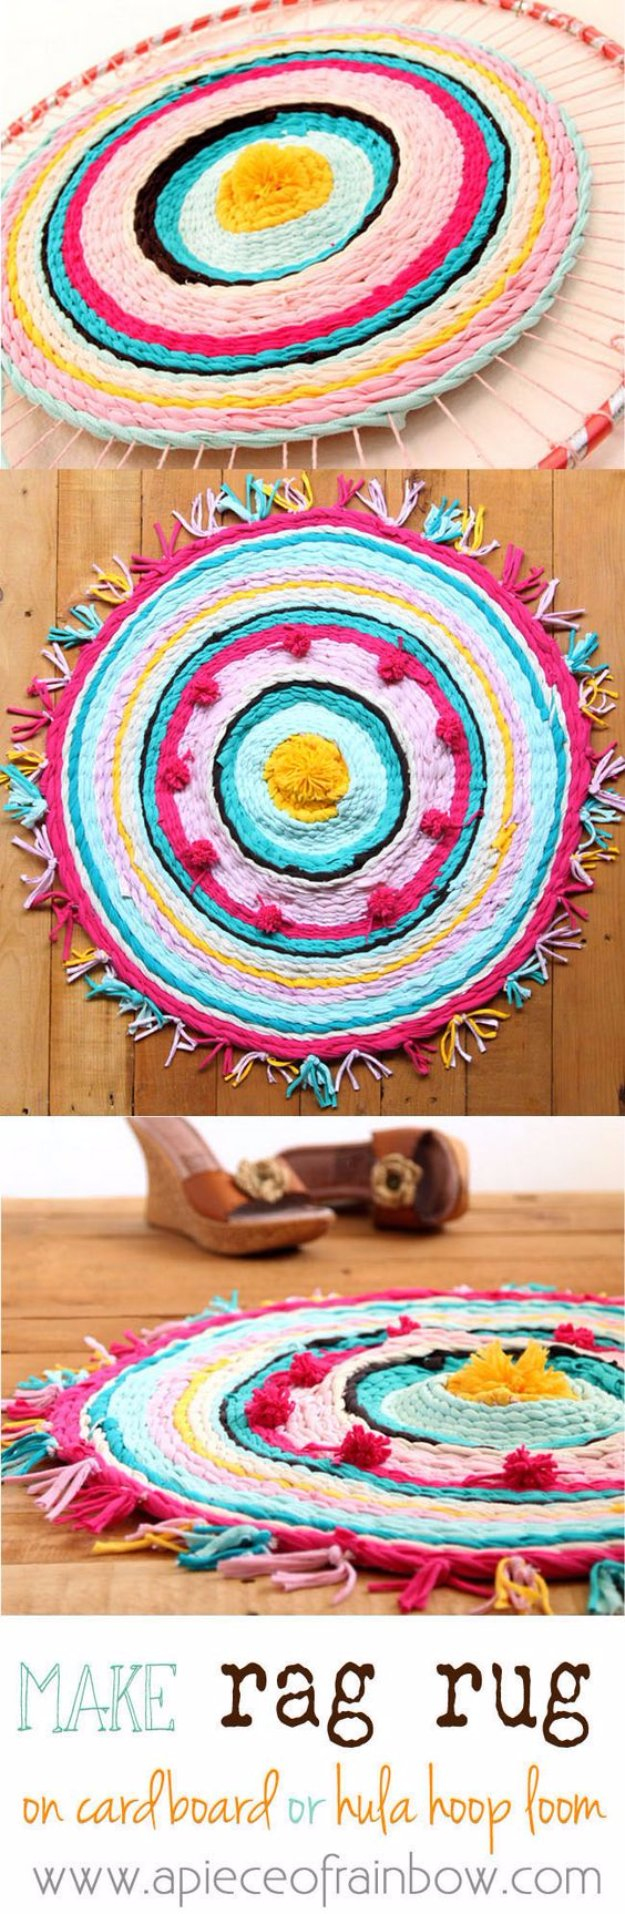 DIY Rag Rug FromDIY Renters Decor Ideas - DIY Rag Rug From Old T-Shirts - Cool DIY Projects for Those Renting Aparments, Condos or Dorm Rooms - Easy Temporary Wall Art, Contact Paper, Washi Tape and Shelves to Make at Home  #diyhomedecor #diyideas